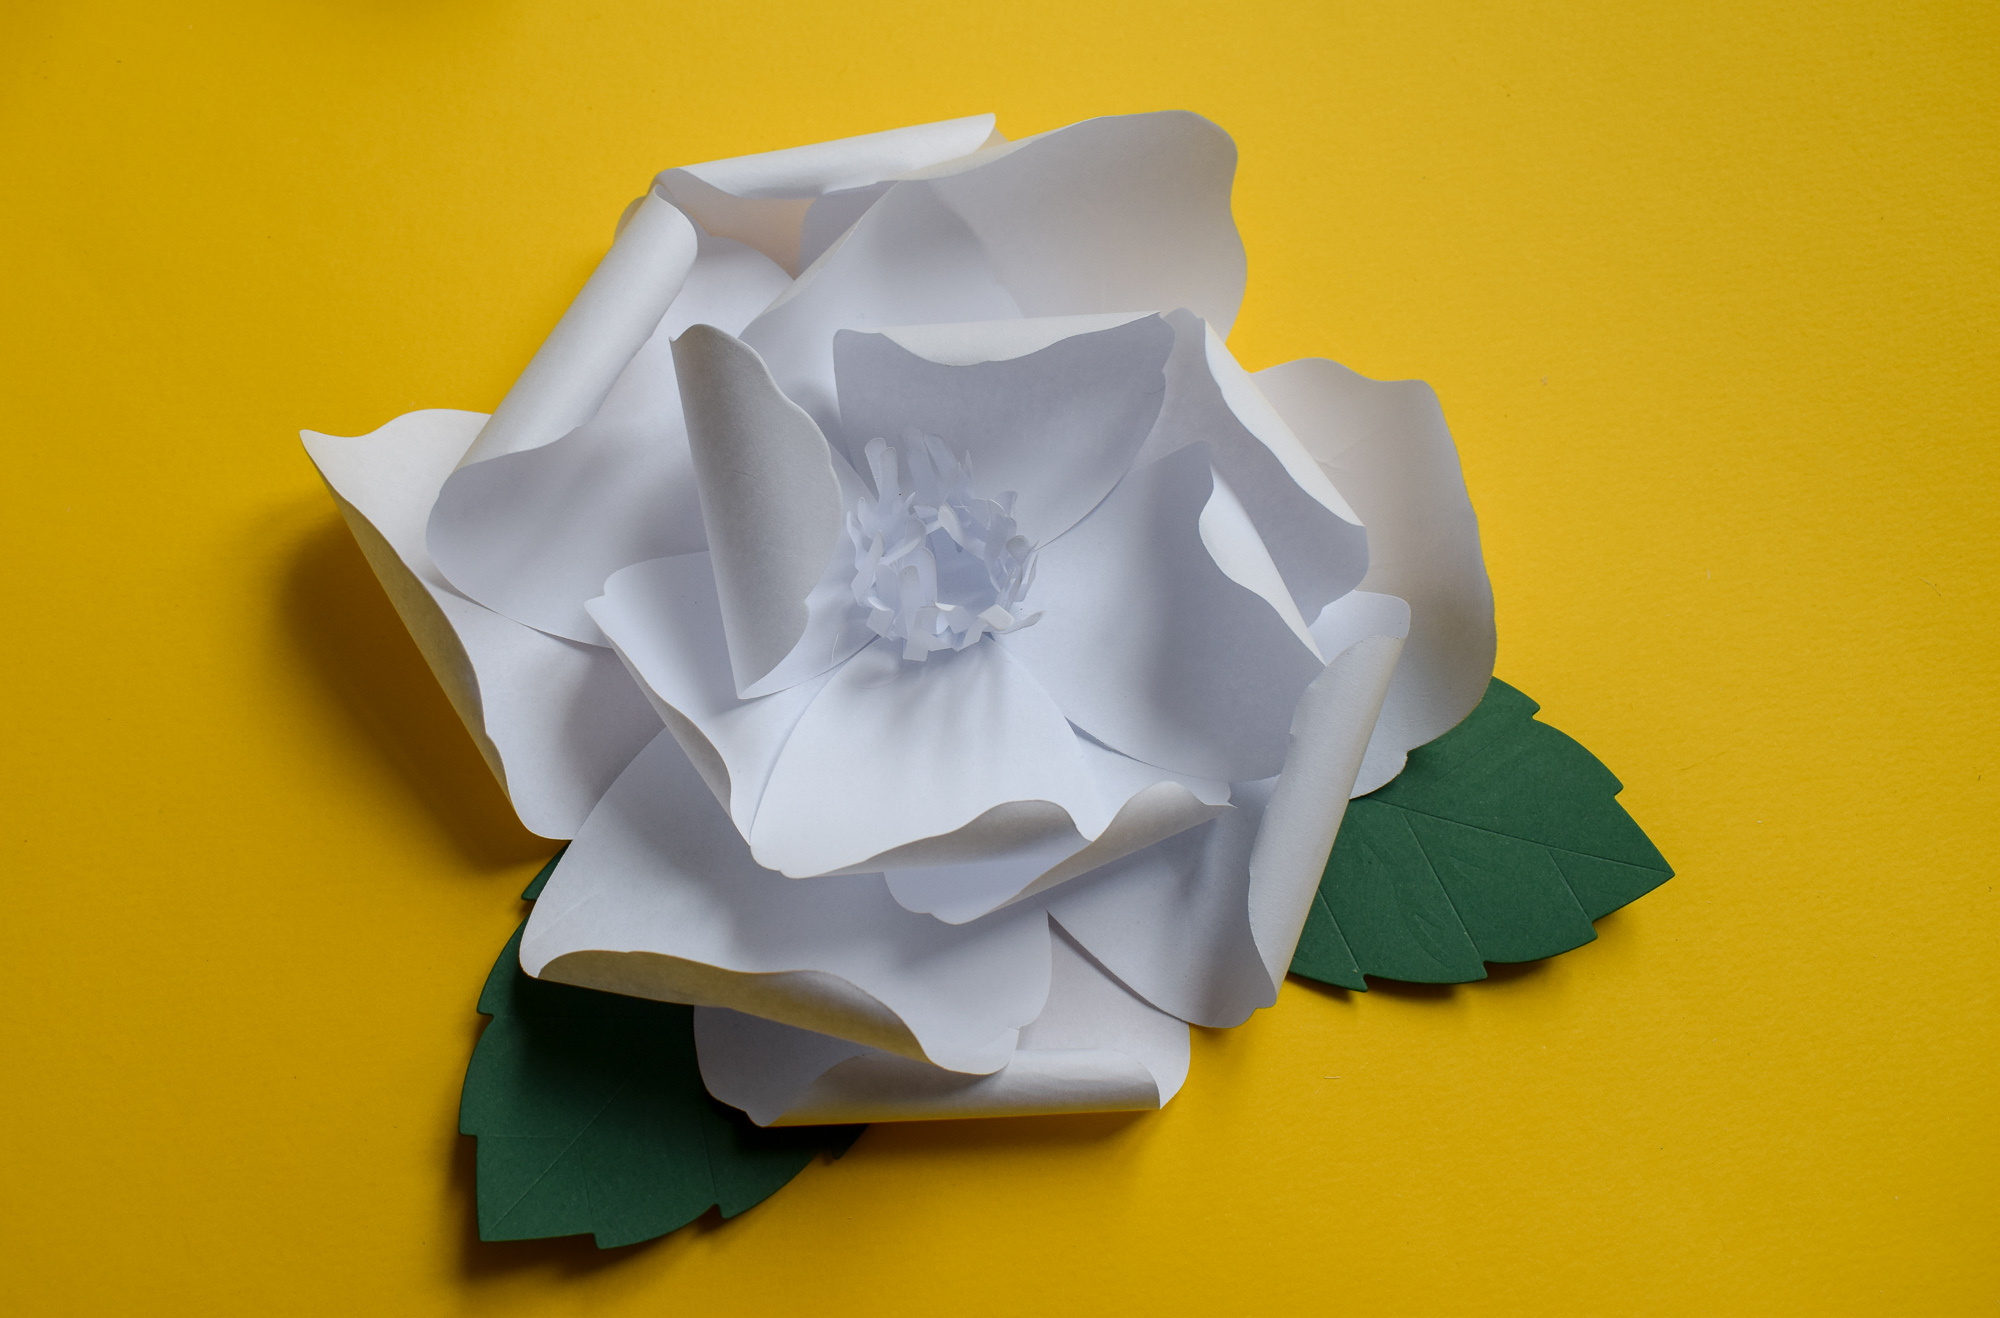 How to Make a Paper Flower with Sizzix's New Large Rose Die. Full tutorial at www.monicabadiu.com/diy-blog